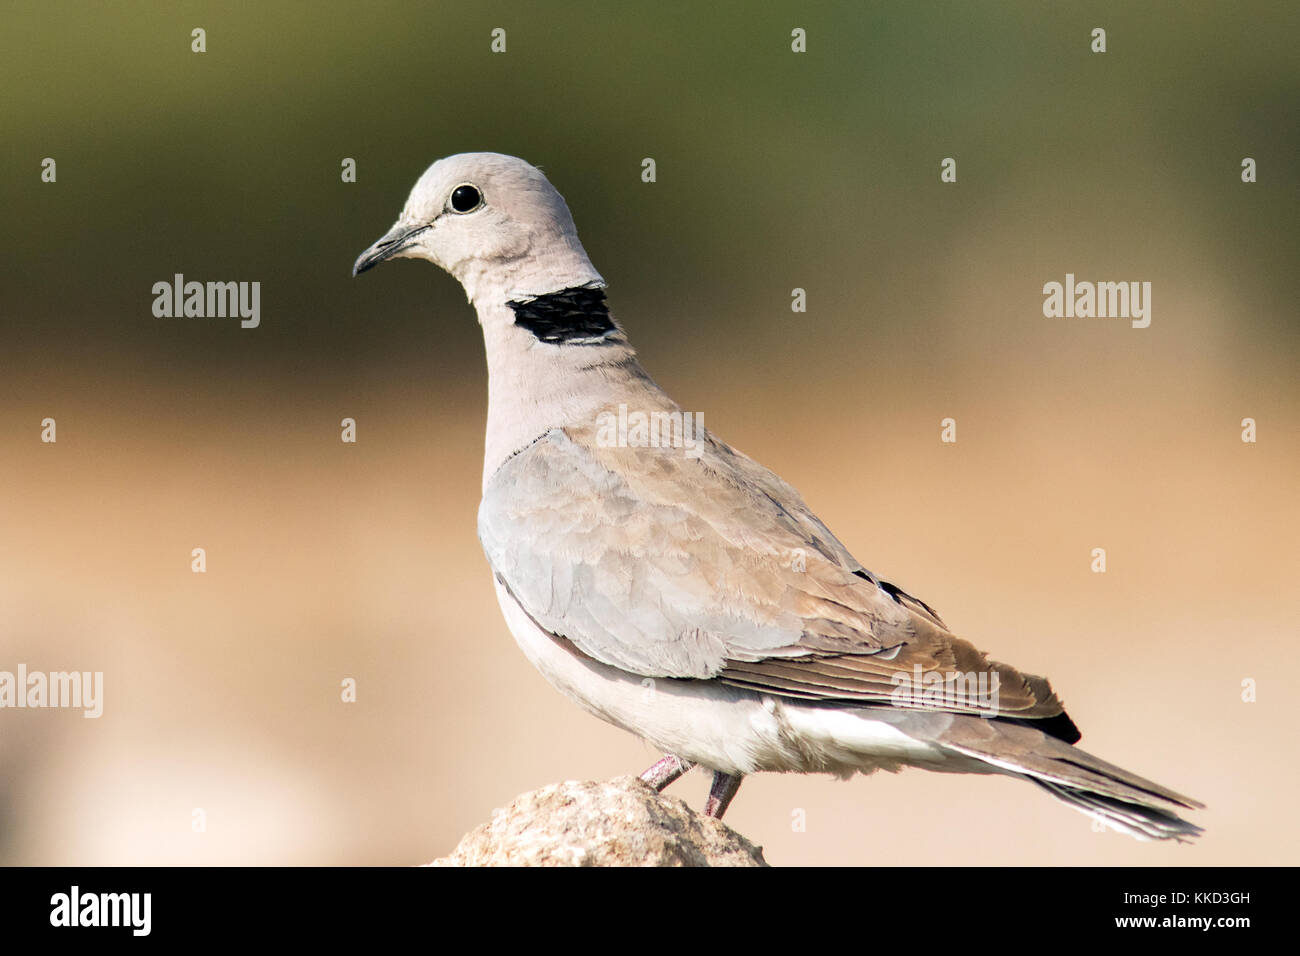 Ring-necked dove or Cape turtle dove (Streptopelia capicola) - Onkolo Hide, Onguma Game Reserve, Namibia, Africa - Stock Image